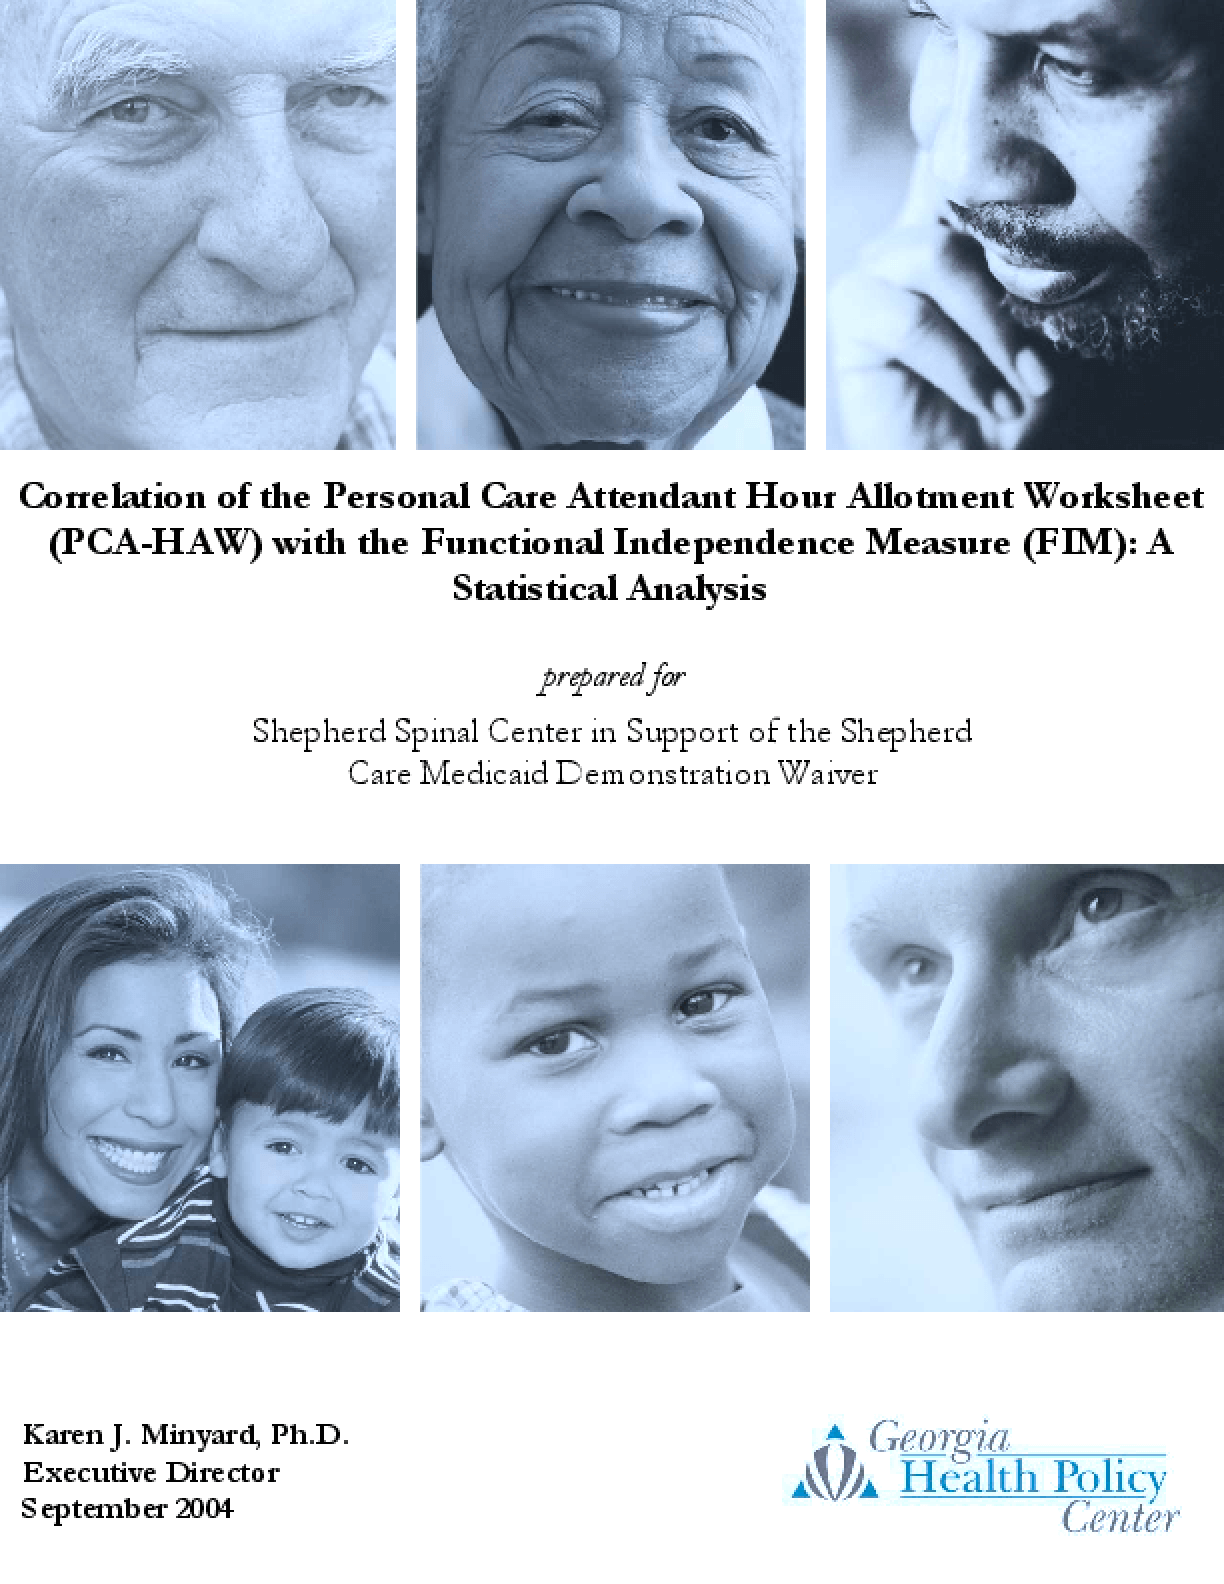 Correlation of the Personal Care Attendant Hour Allotment Worksheet (PCA-HAW) with the Functional Independence Measure (FIM): A Statistical Analysis (September 2004)